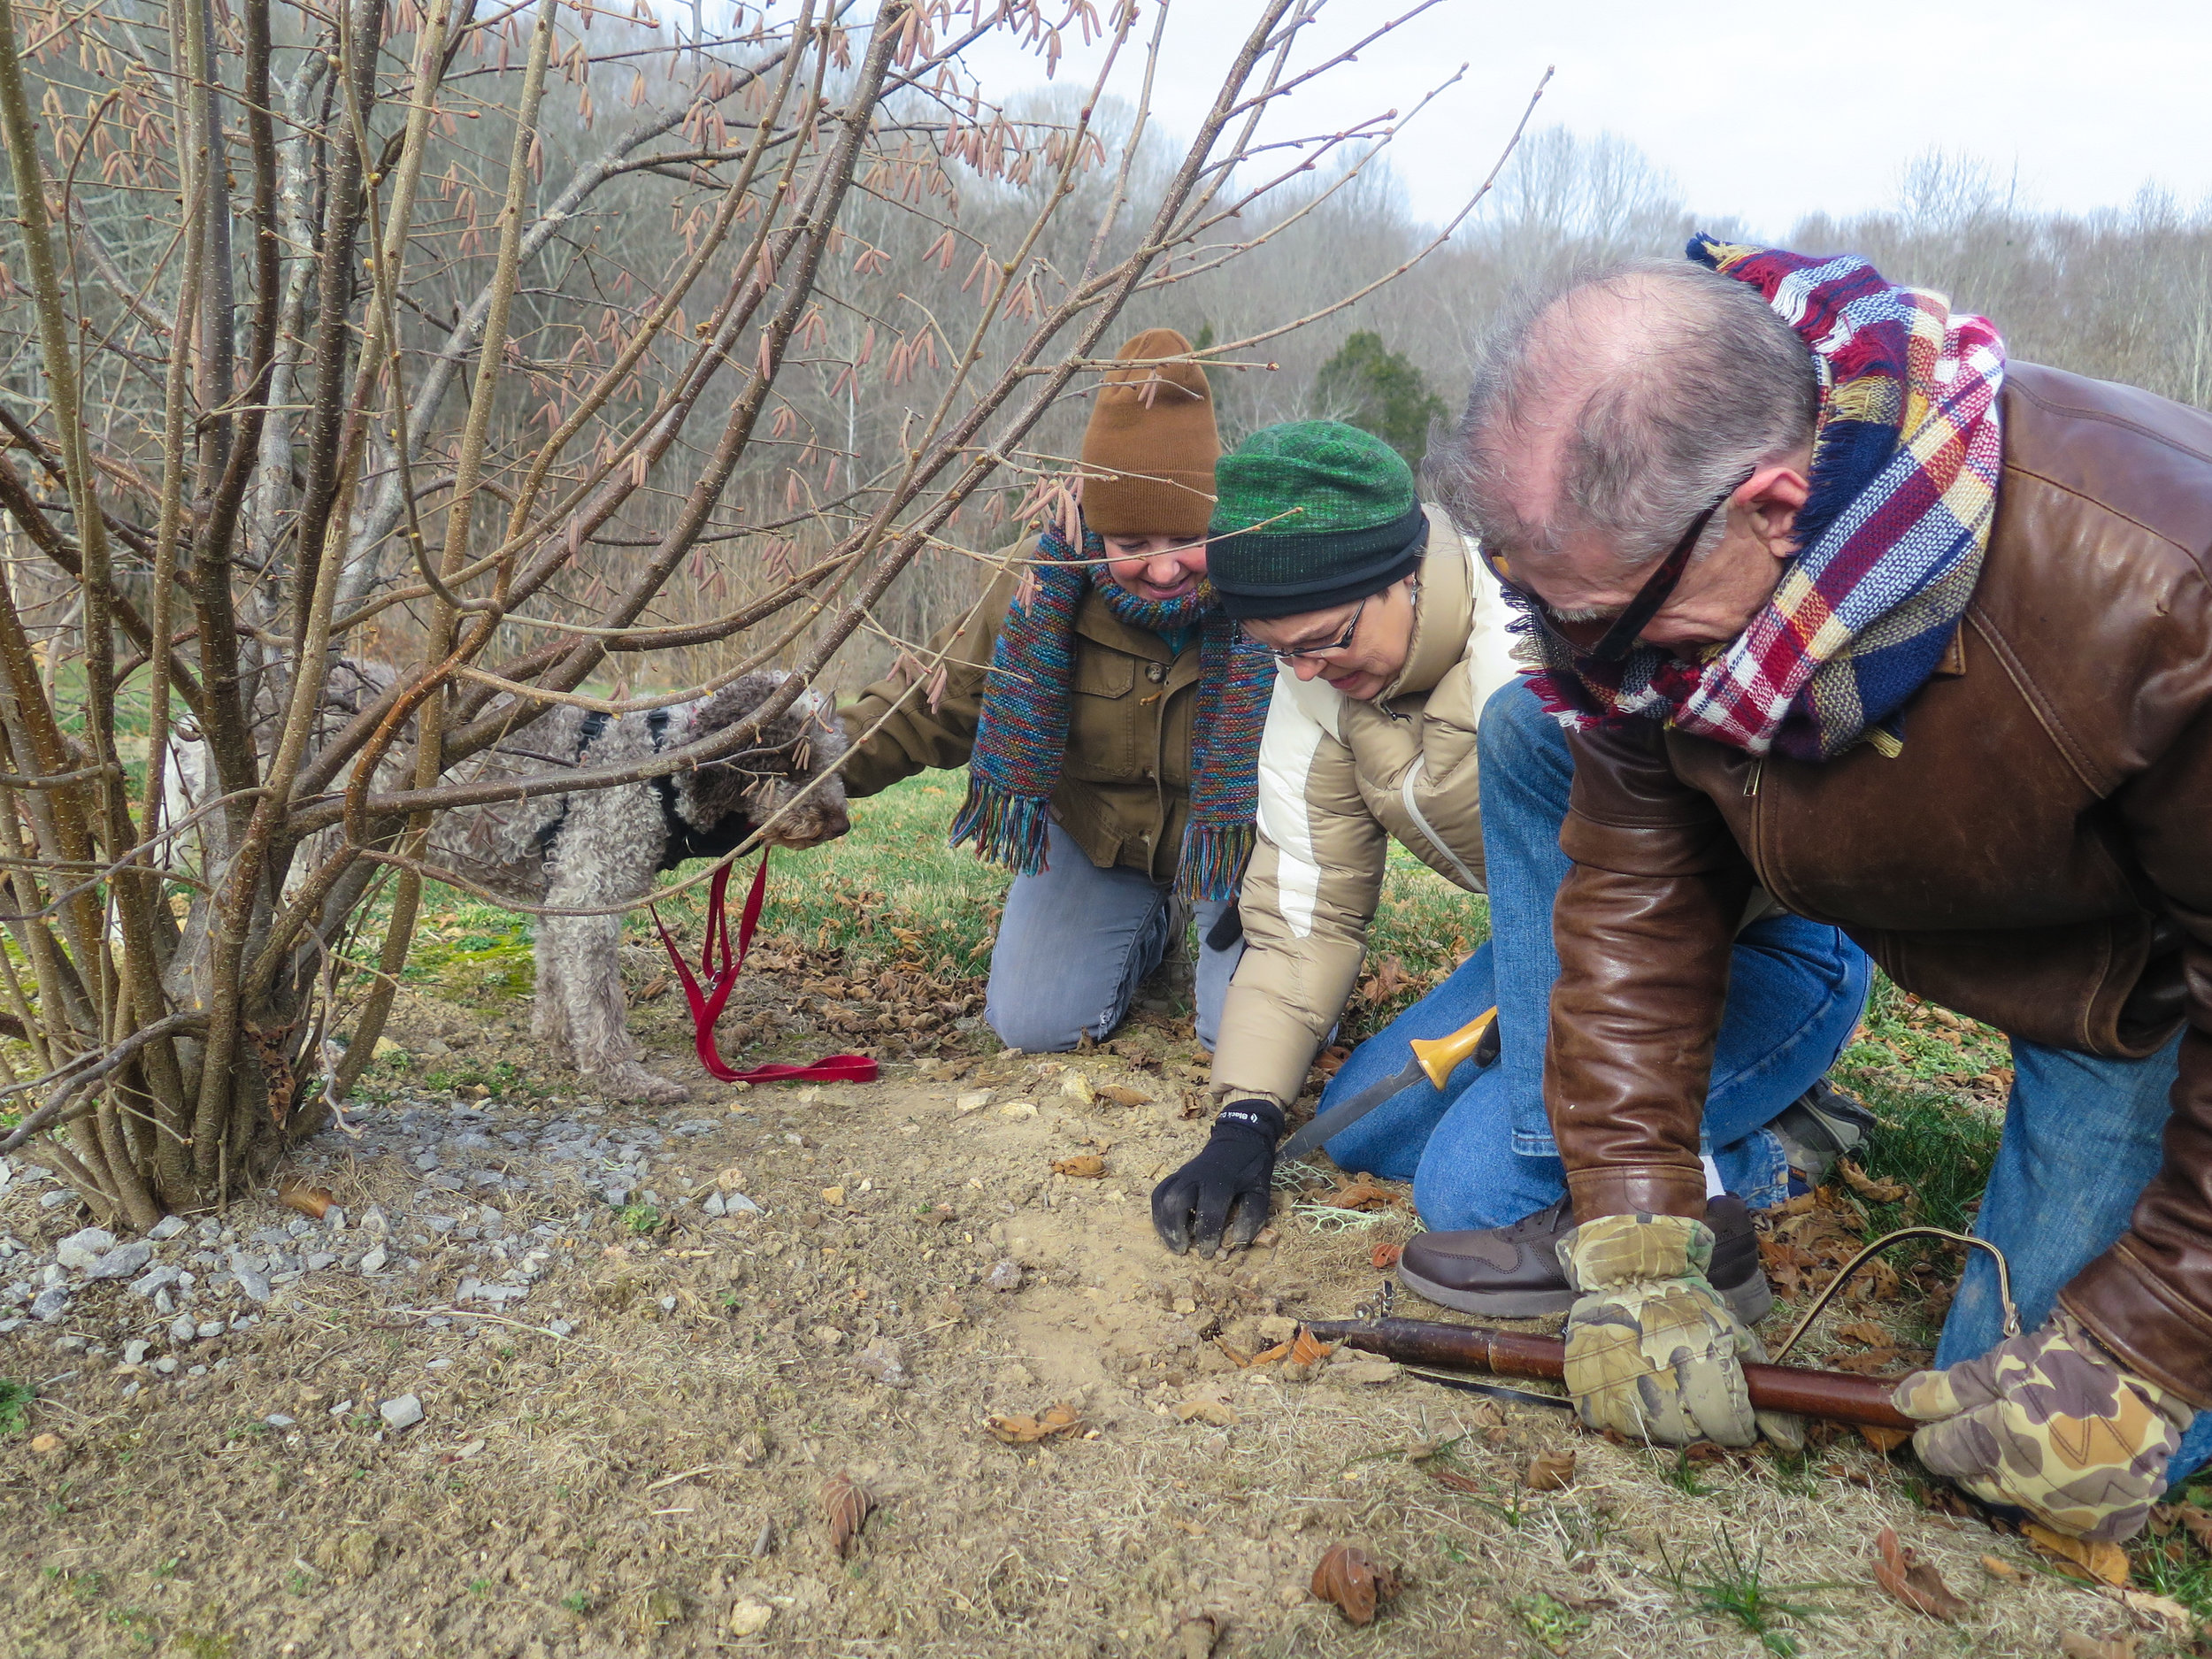 From left, Margaret Townsend, Lois Martin and Tom Michaels dug at a spot where the dog Monza sniffed out a native truffle.